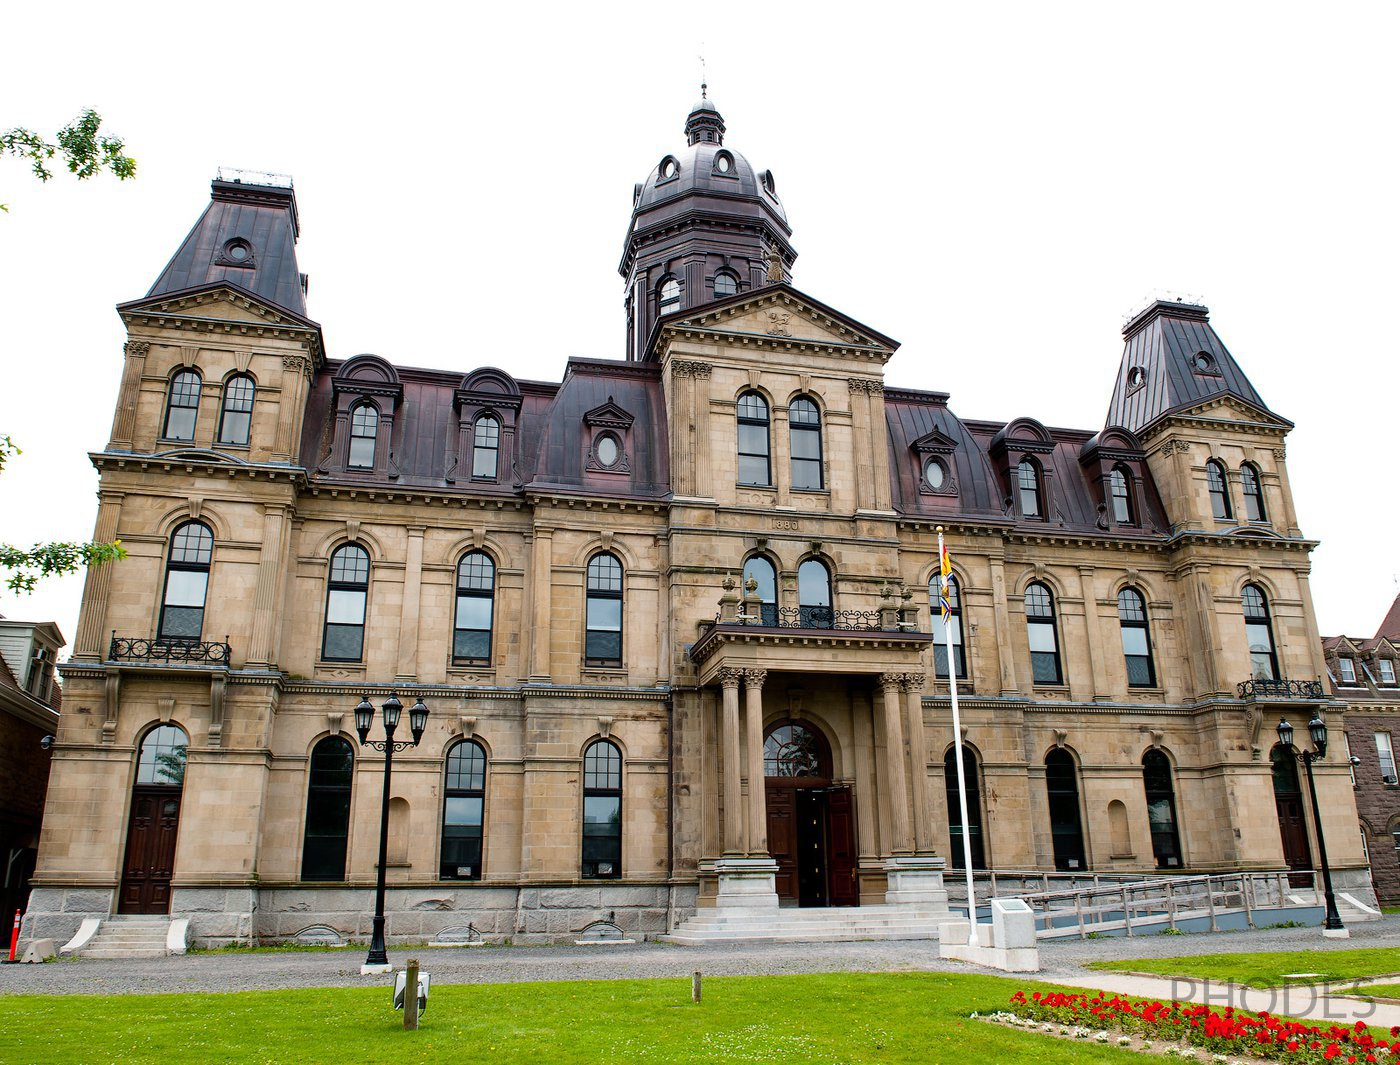 Parliament building in New Brunswick